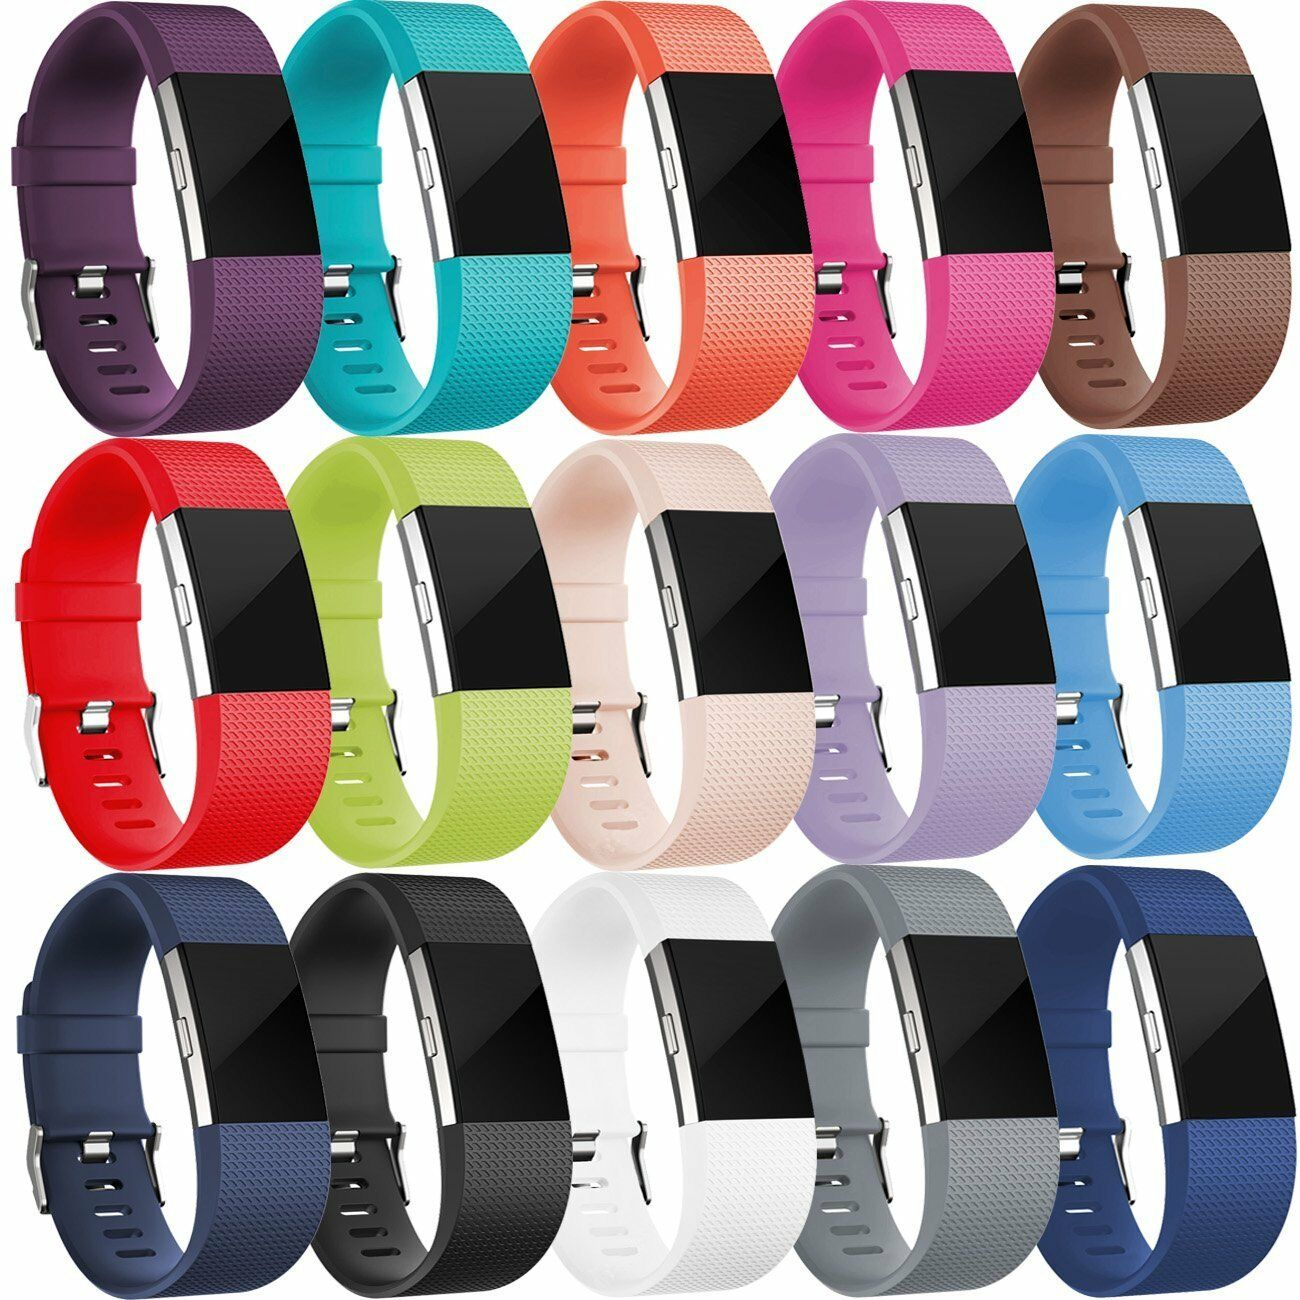 Replacement Silicone Rubber Band Strap Wristband Bracelet For Fitbit CHARGE 2 US